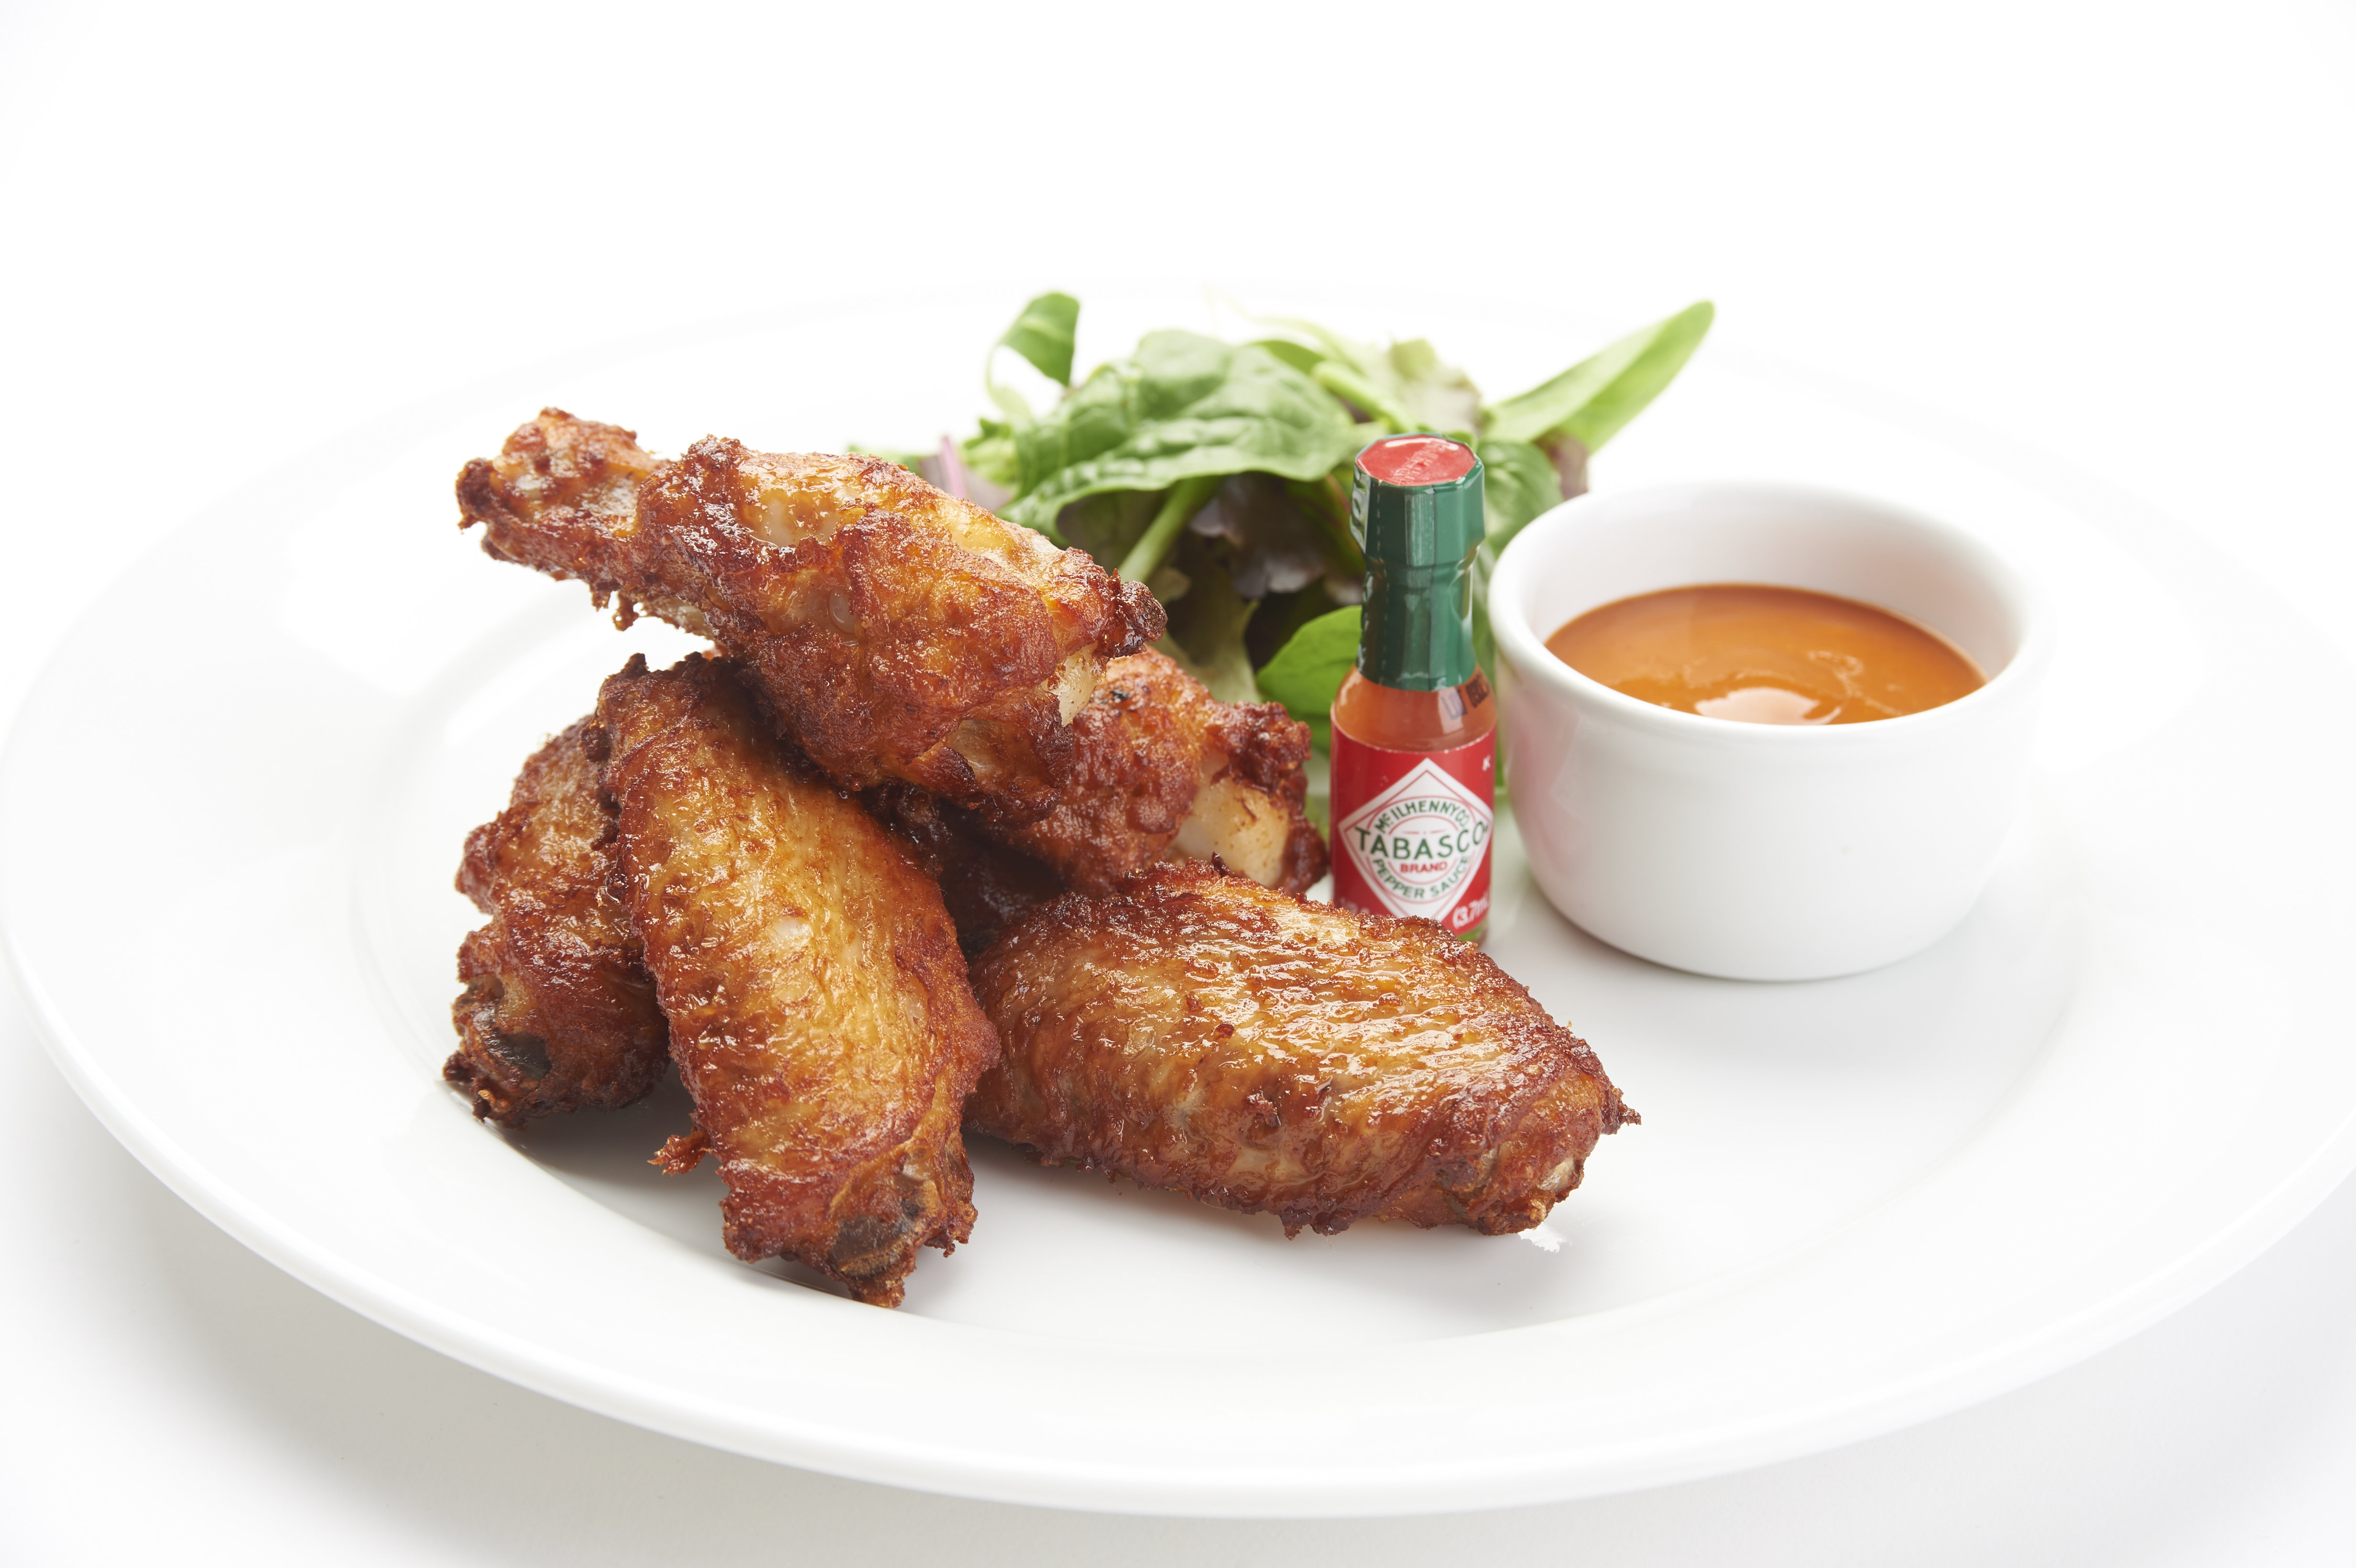 Spice n Easy Cooked Chicken Wings with TABASCO brand seasoning